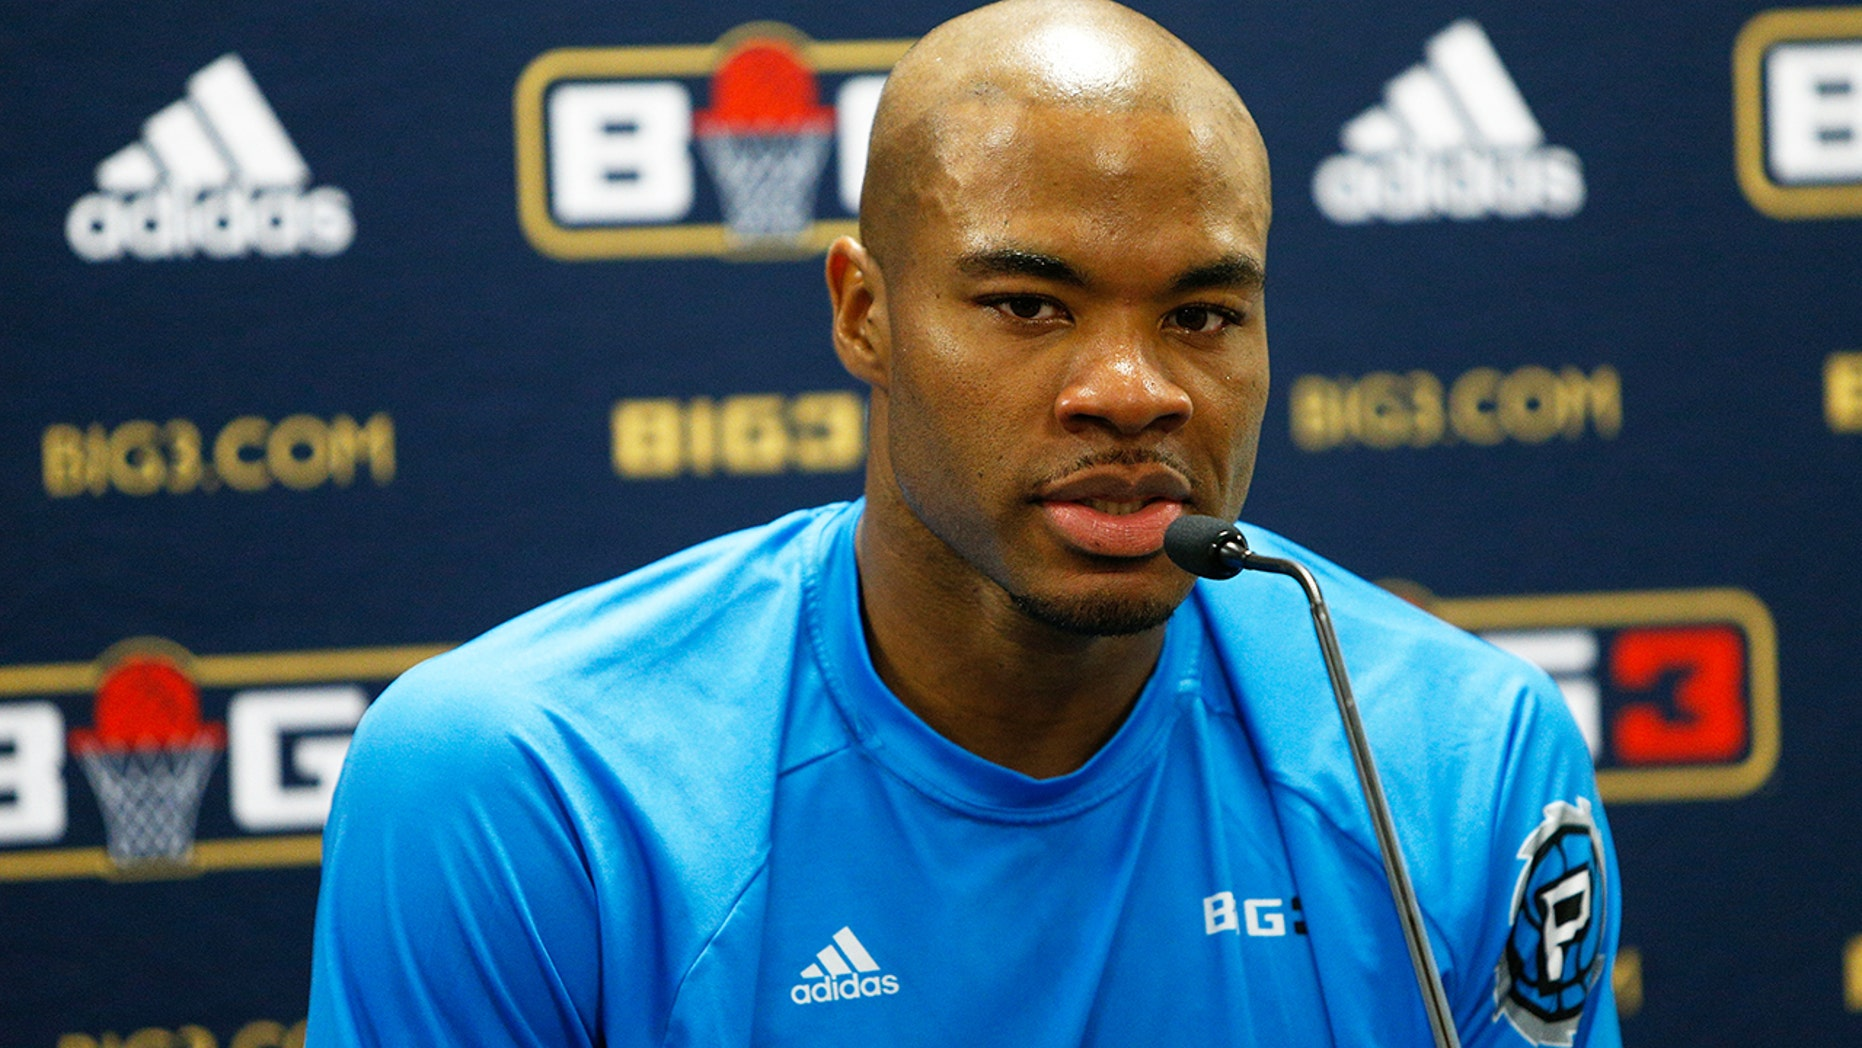 AUGUST 10: Corey Maggette answers questions from a media during week 8 of a BIG3 3 on 3 basketball joining during Infinite Energy Arena in Duluth, Georgia. (Getty Images)